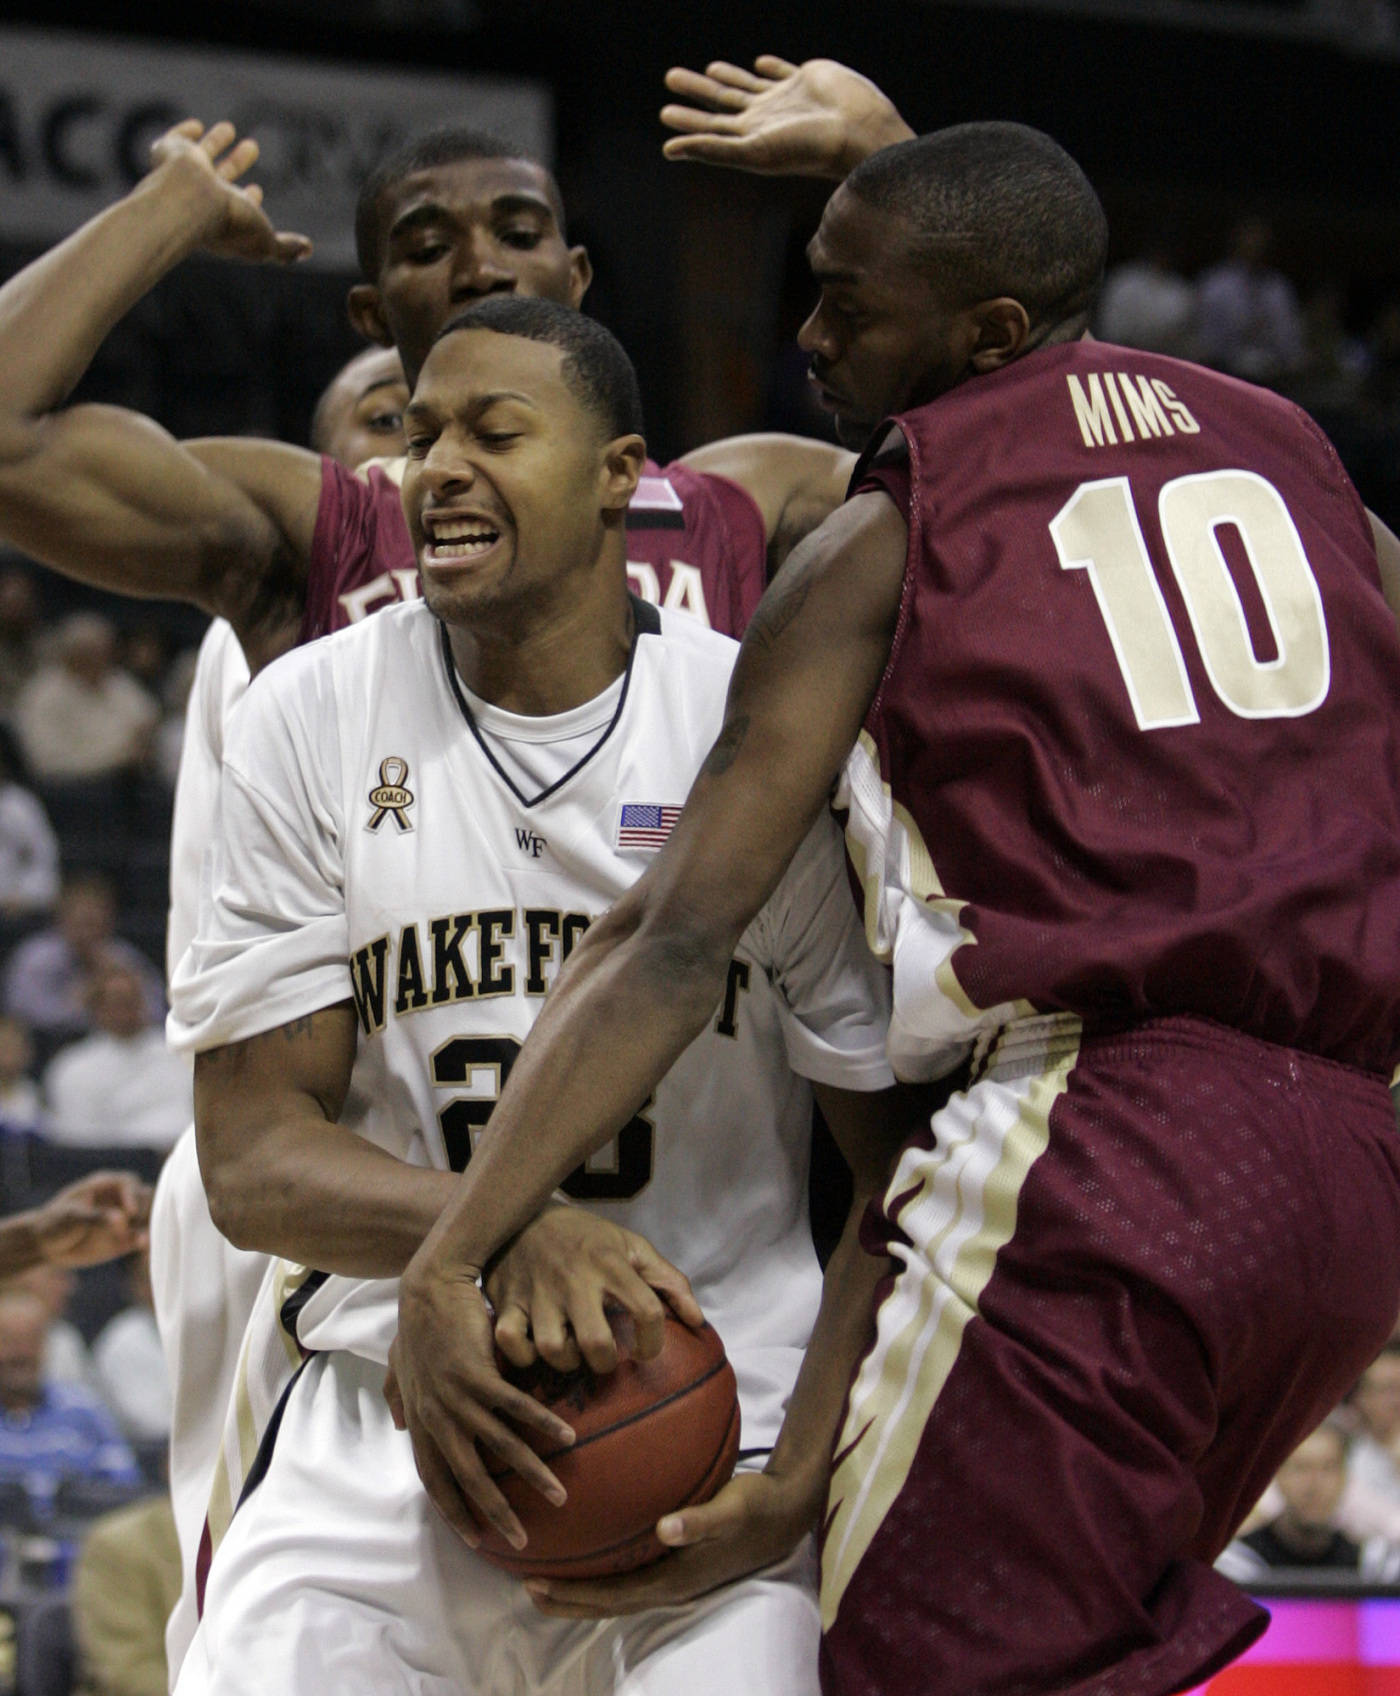 Wake Forest's James Johnson fights for the ball as he is double teamed byUche Echefu, rear, and Ralph Mims (10) in the first half of their ACC basketball tournament game at Bobcats Arena in Charlotte, N.C., Thursday. (AP Photo/Steve Helber)